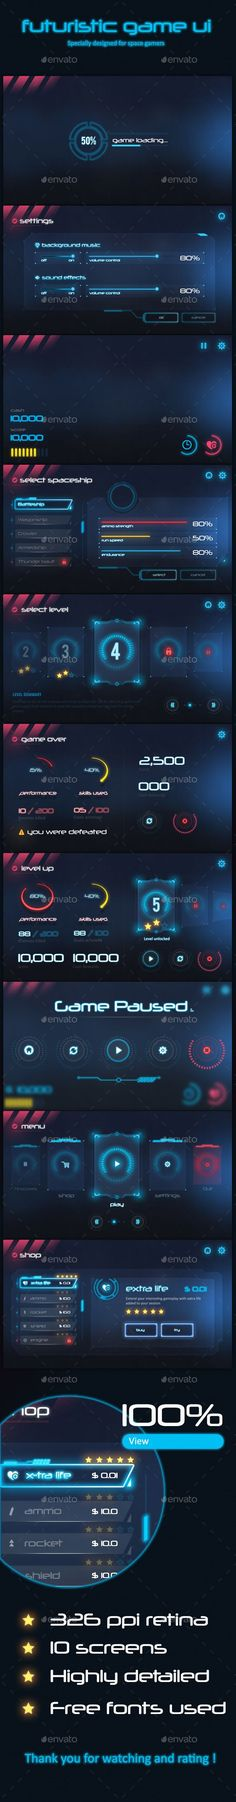 Futuristic Game Ui Download here: https://graphicriver.net/item/futuristic-game-ui/19577793?ref=KlitVogli